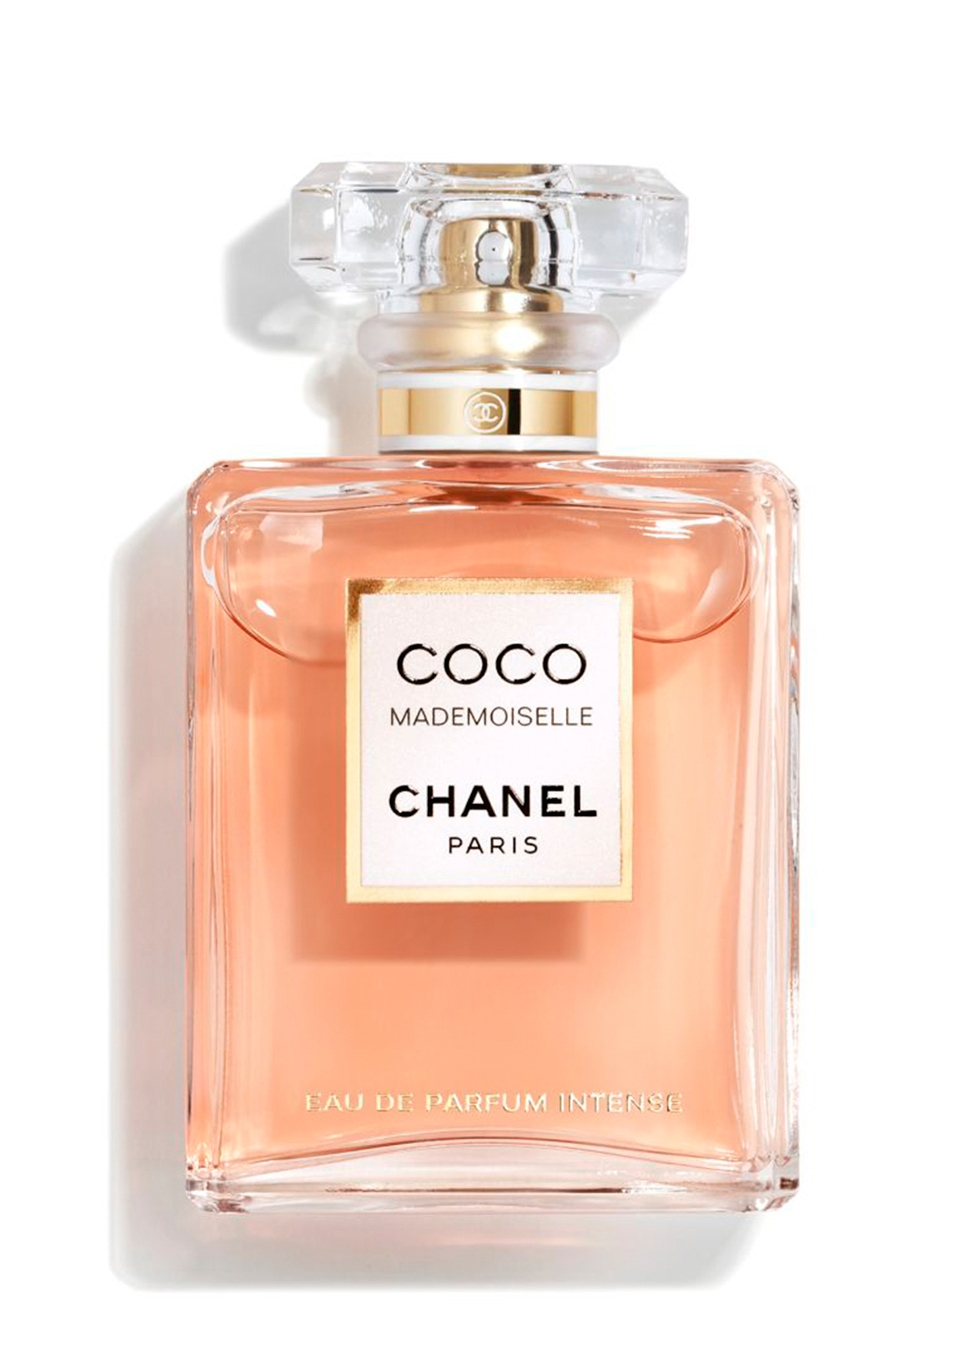 Chanel Coco Mademoiselle Eau De Parfum Intense Spray 100ml